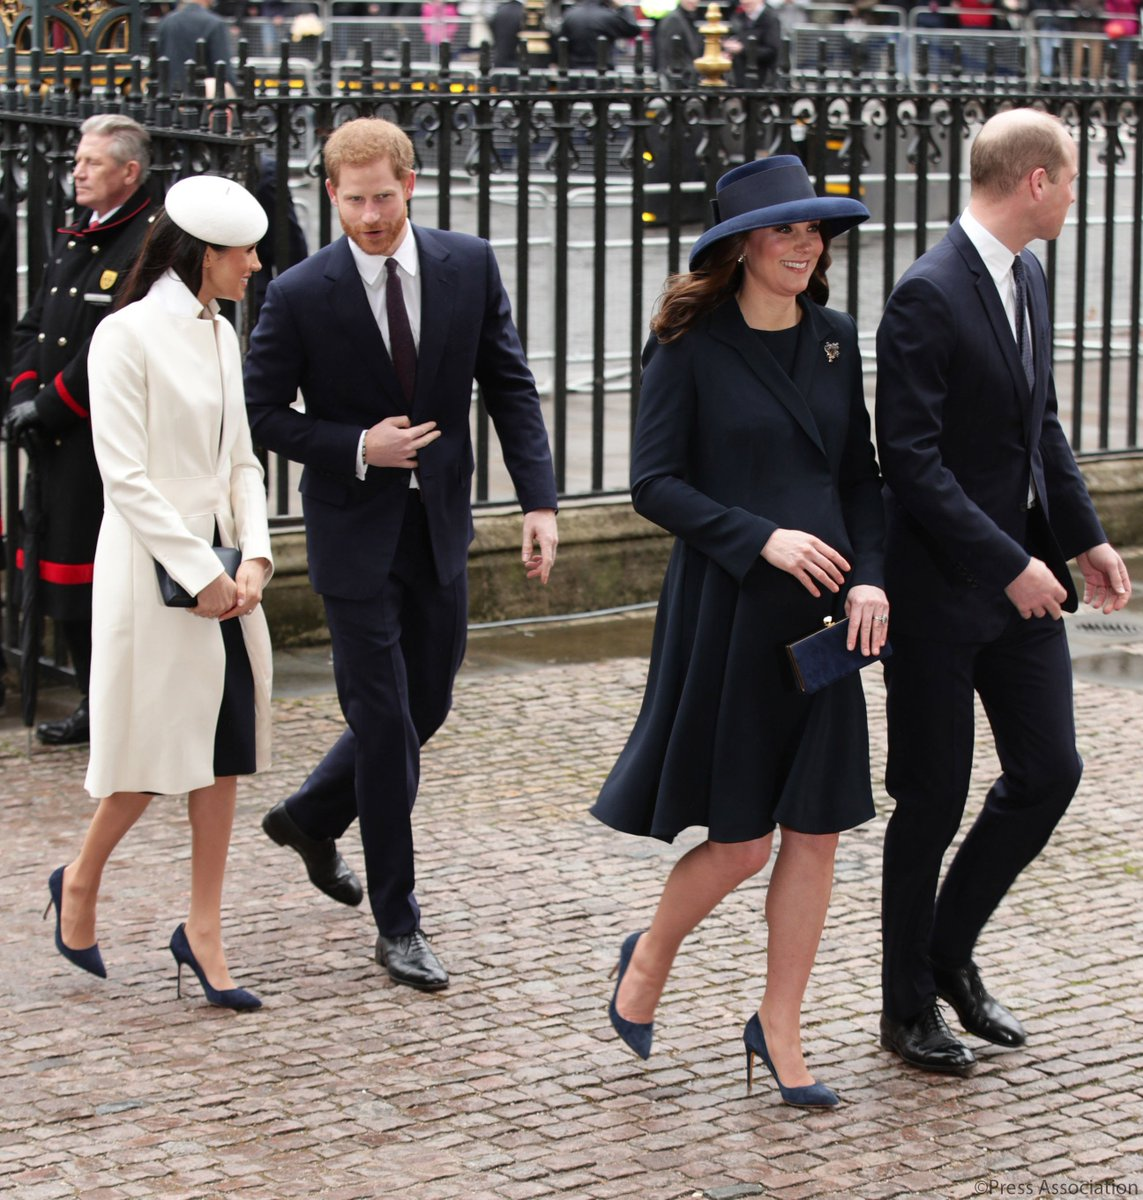 The Duke and Duchess of Cambridge, Prince Harry and Ms. Meghan Markle arrive at @wabbey for the #CommonwealthDay Service. The Commonwealth Service is the largest annual inter-faith gathering in the United Kingdom.